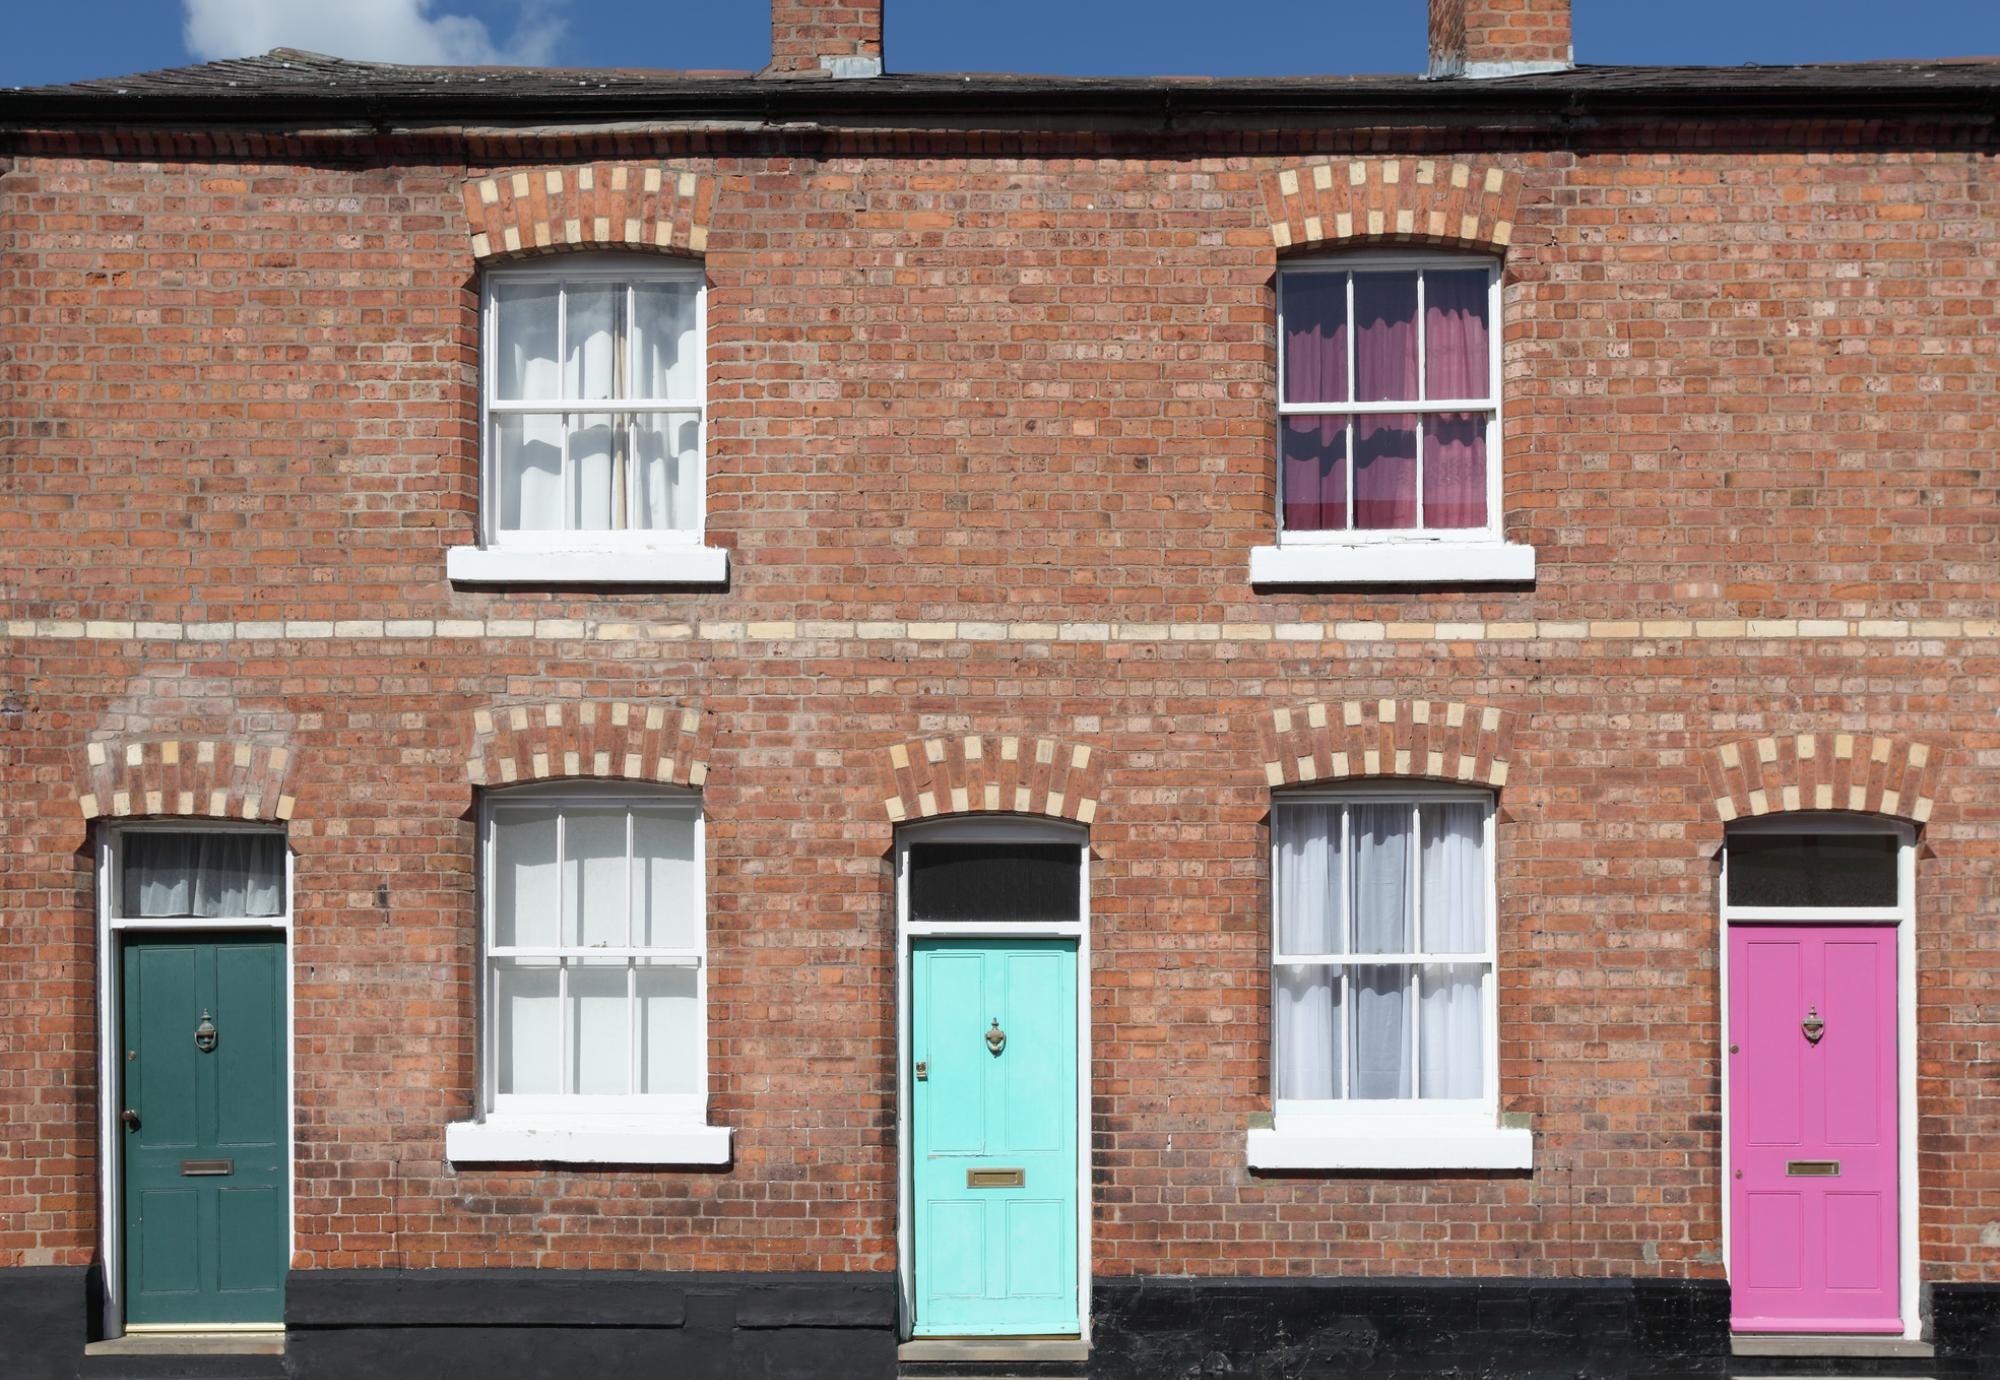 Terraced houses with multicoloured doors.